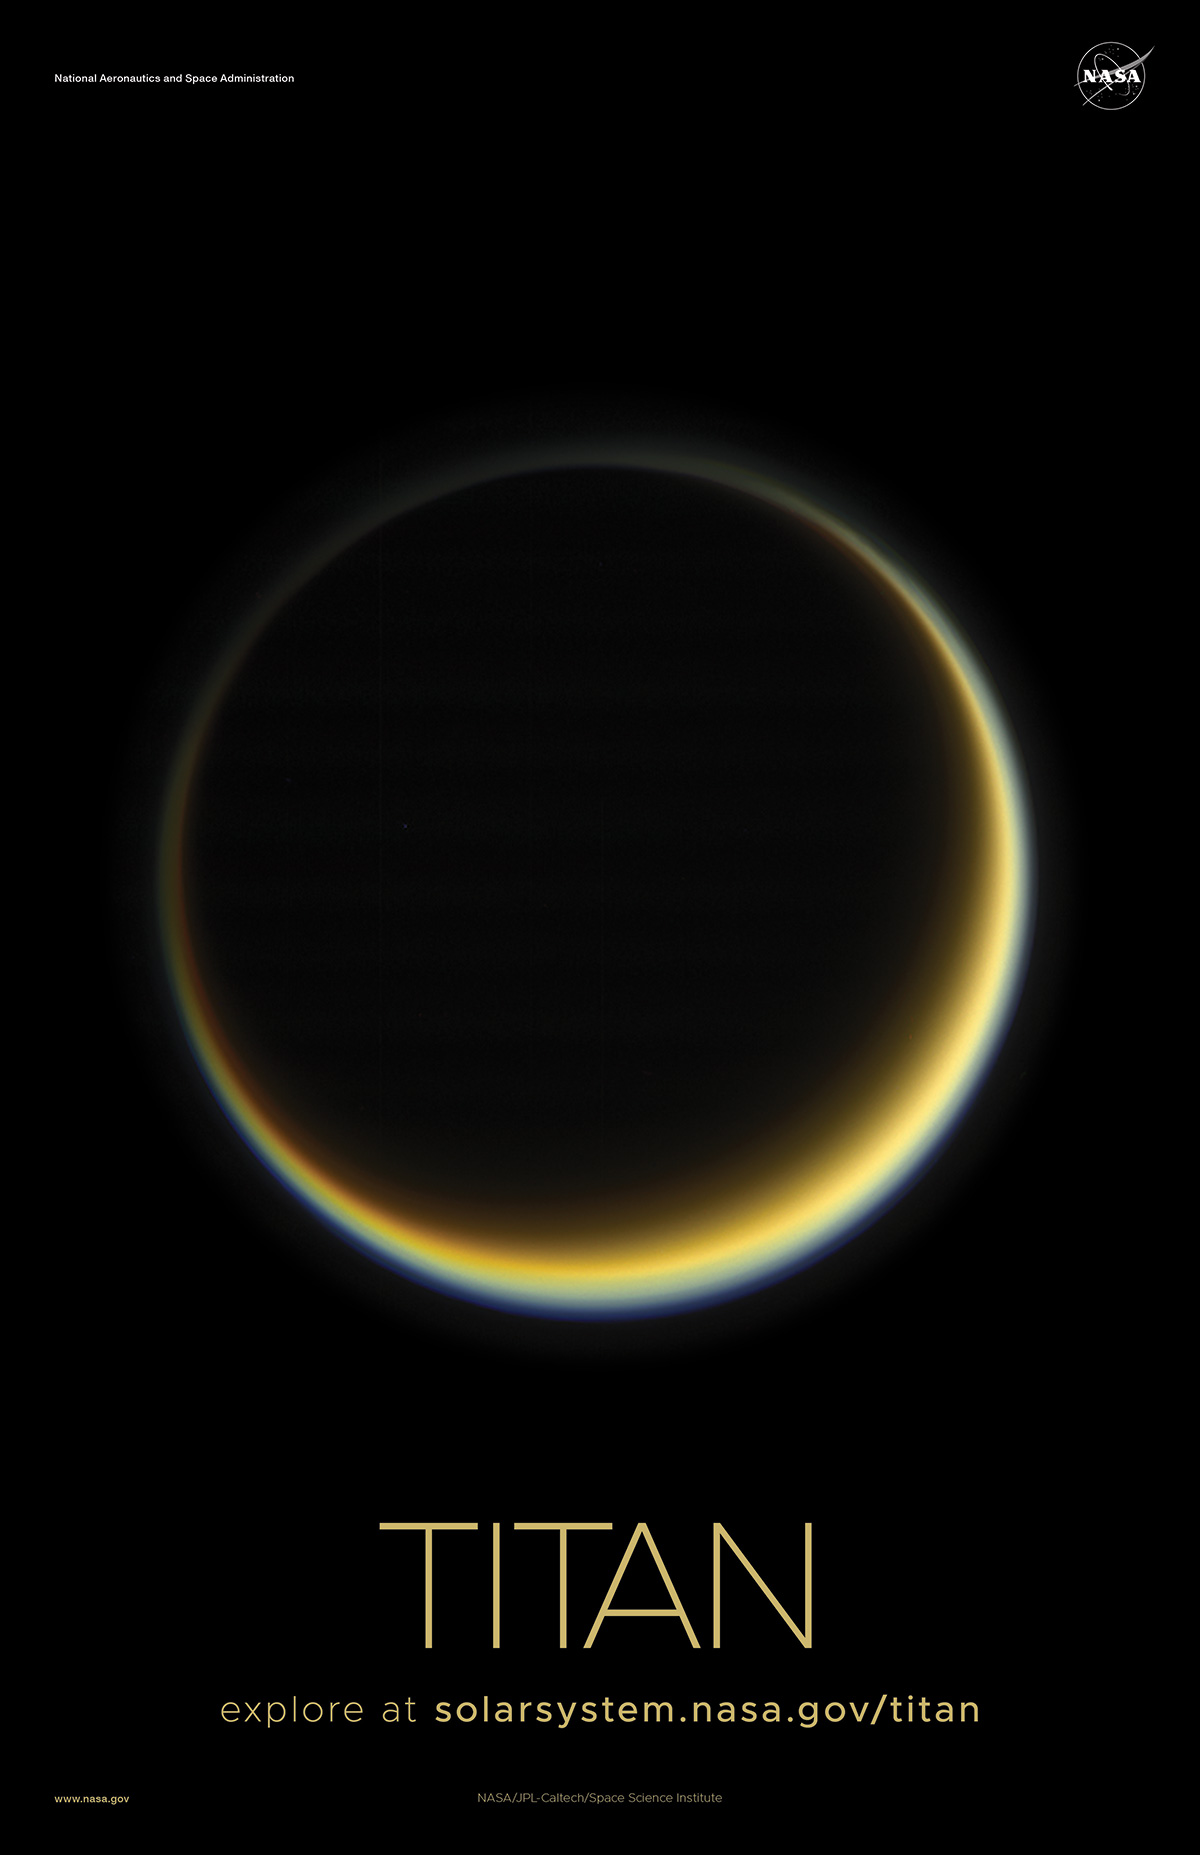 Crescent view of Titan on a poster.